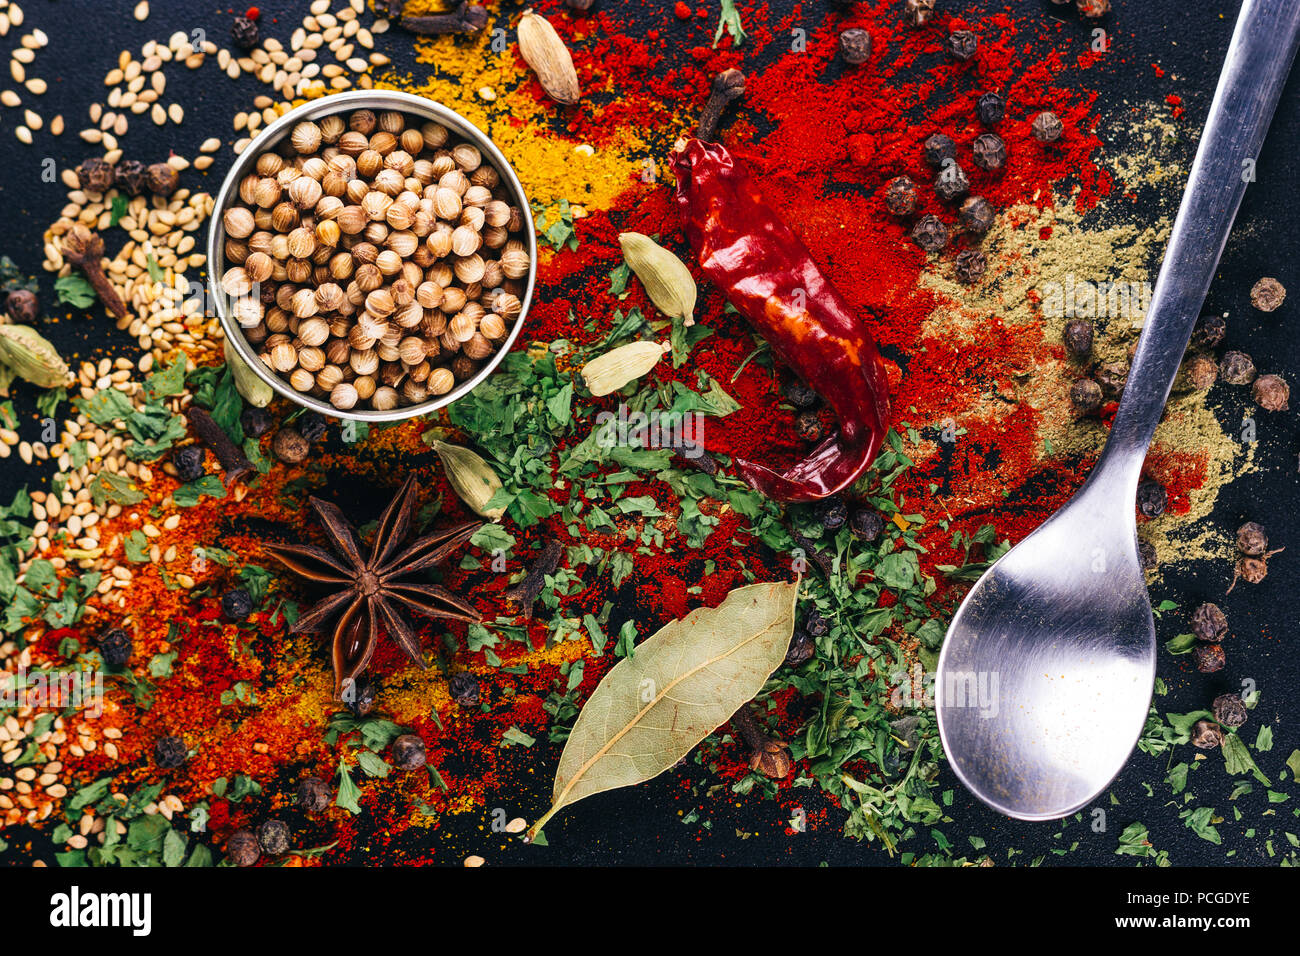 Disaster Of Spices And Condiments For Cooking On A Dark Table Restaurant Concept Stock Photo Alamy